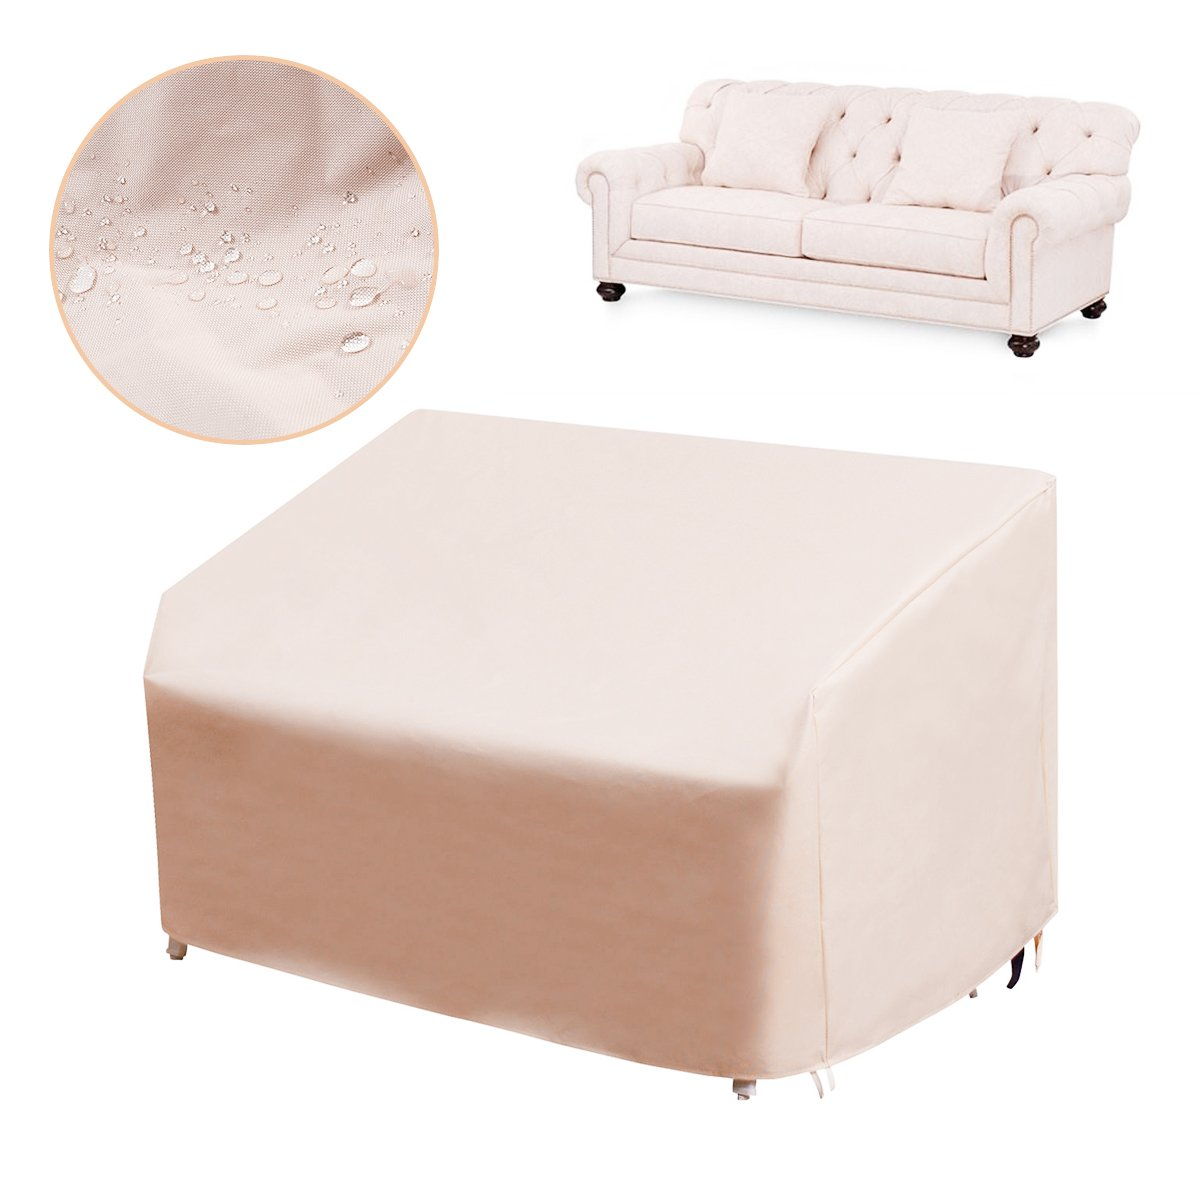 dDanke Furniture dust cover Protective Covers Wicker/Rattan Sofa Cover Protection Outdoor, 85''x43''x40''